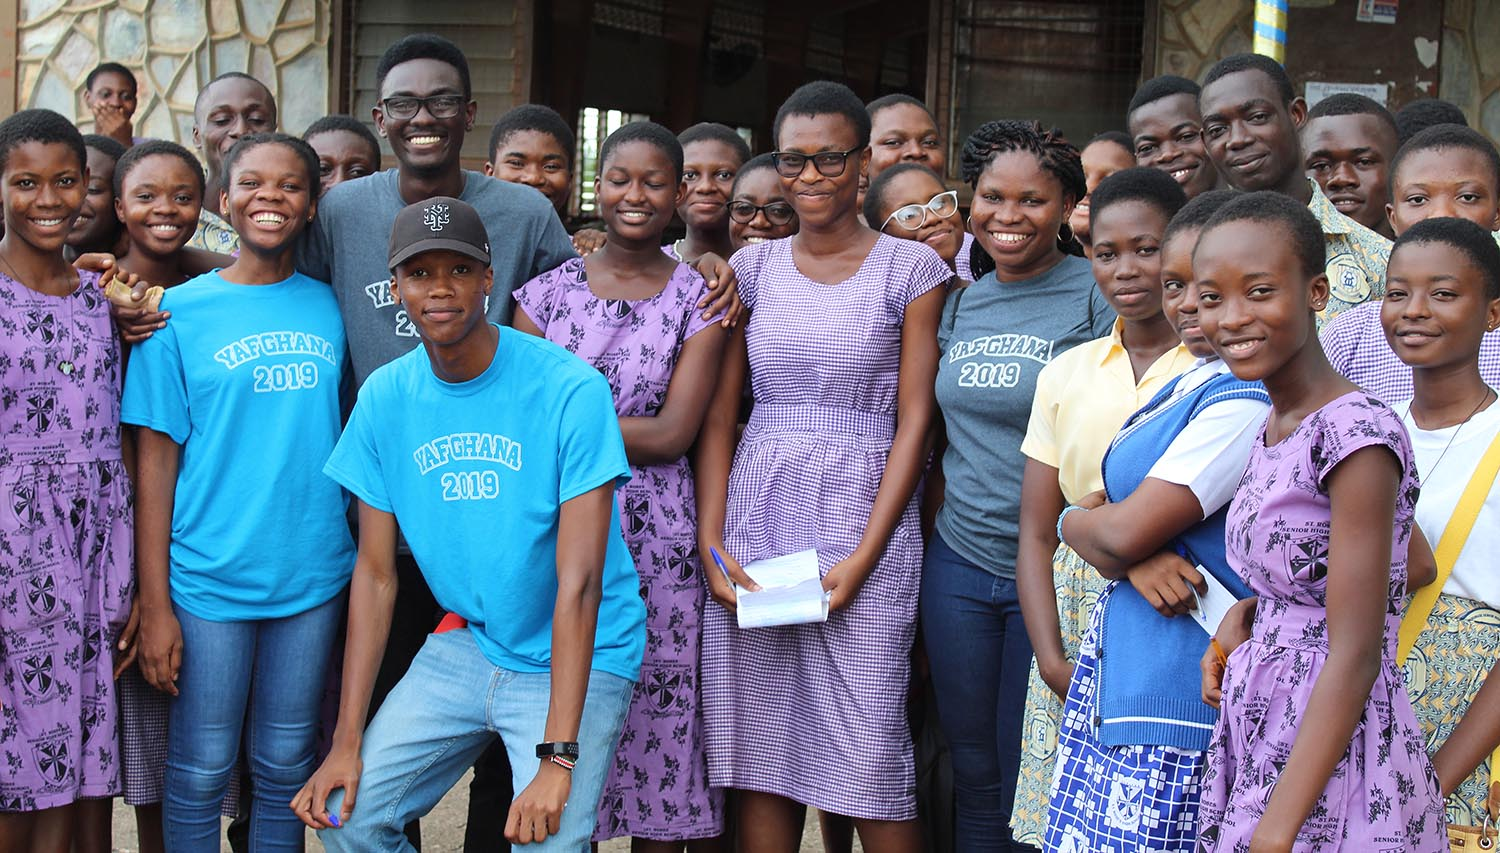 The Young Achievers Foundation (YAF) Ghana, spearheaded by Ferdinand Quayson '20 (pictured in the black shirt), is a recipient of a 2019 Davis Projects for Peace Award. YAF Ghana exposes disadvantaged students in Northern Ghana to available scholarship opportunities and provides them with free resources needed to be successful applicants.